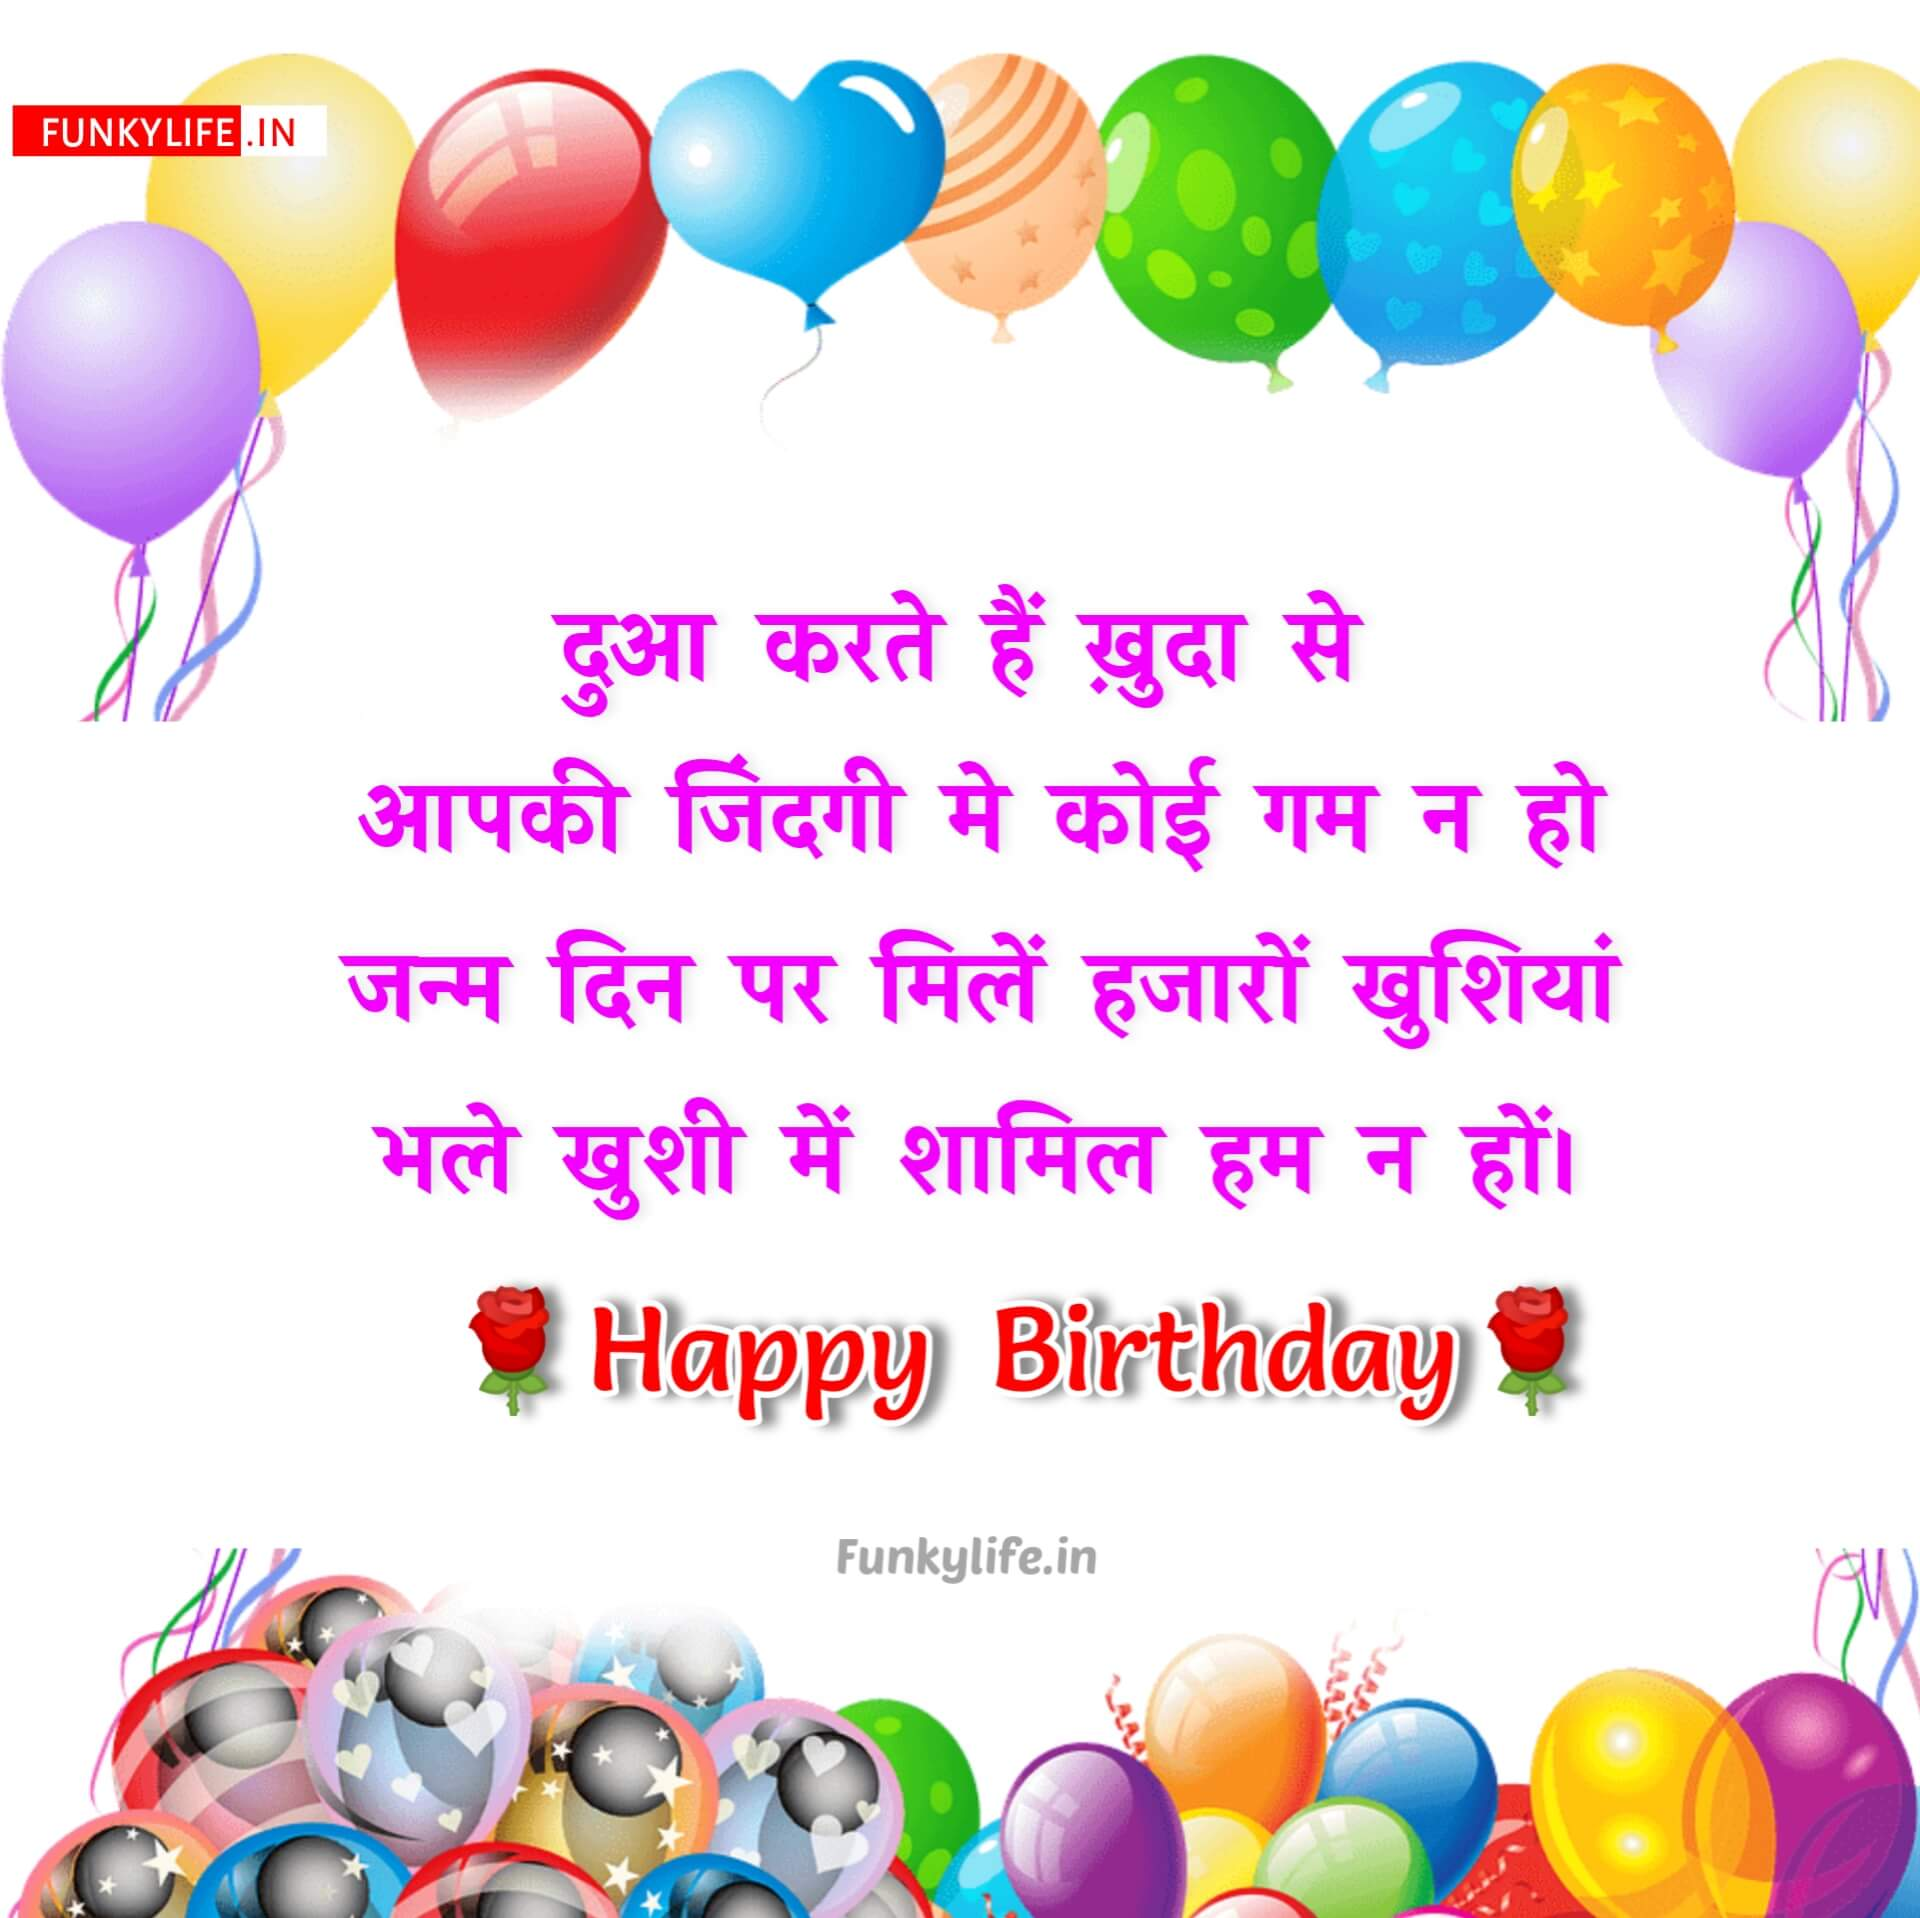 happy Birthday wishes in Hindi for girlfriend download funk life